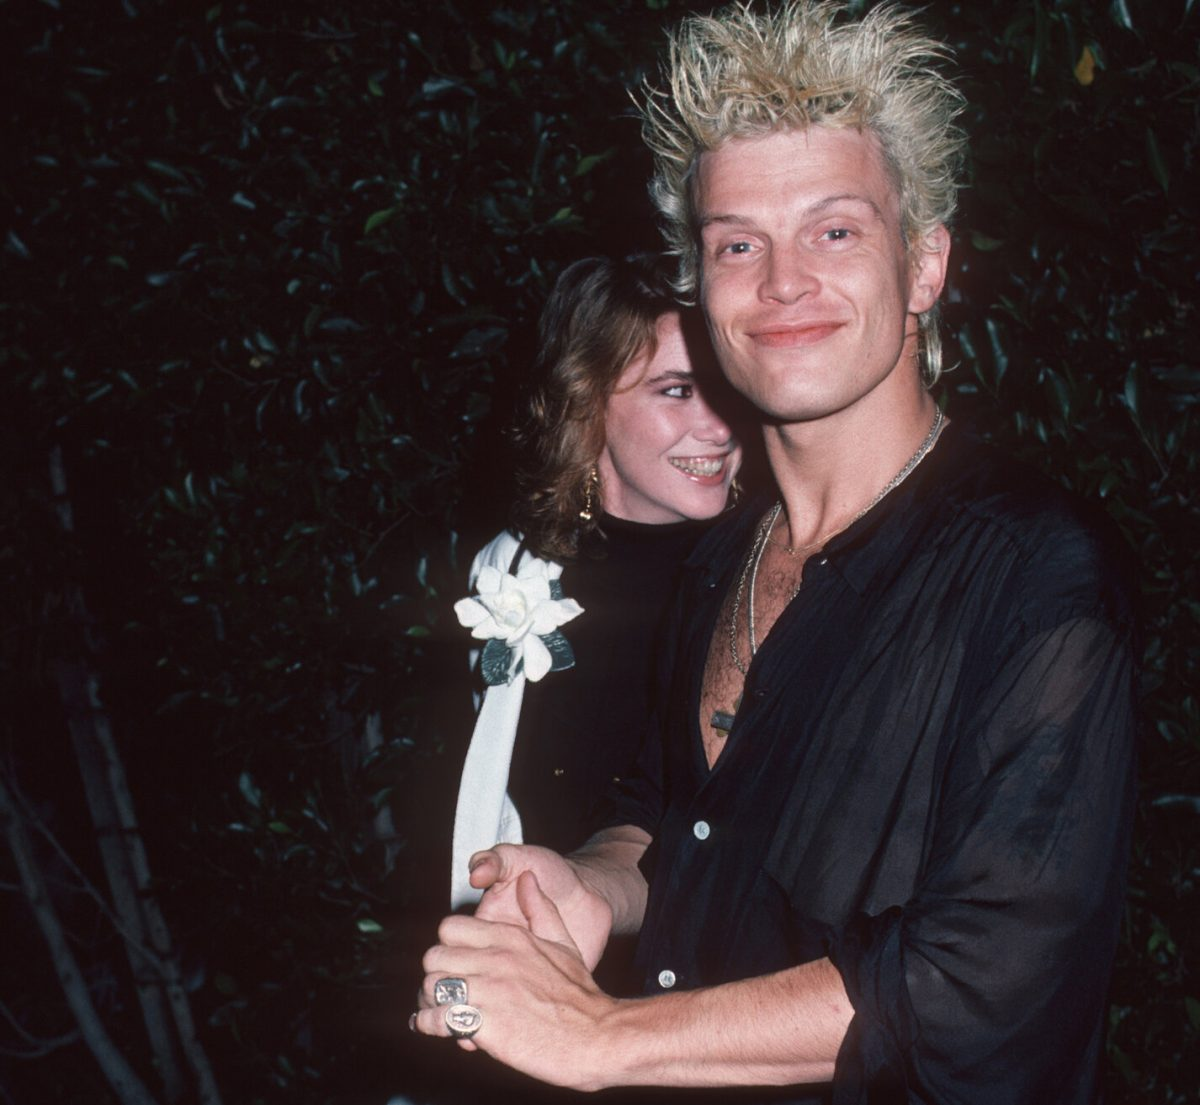 Melissa Gilbert and Billy Idol after a date at Le Dome Restaurant in West Hollywood, 1986